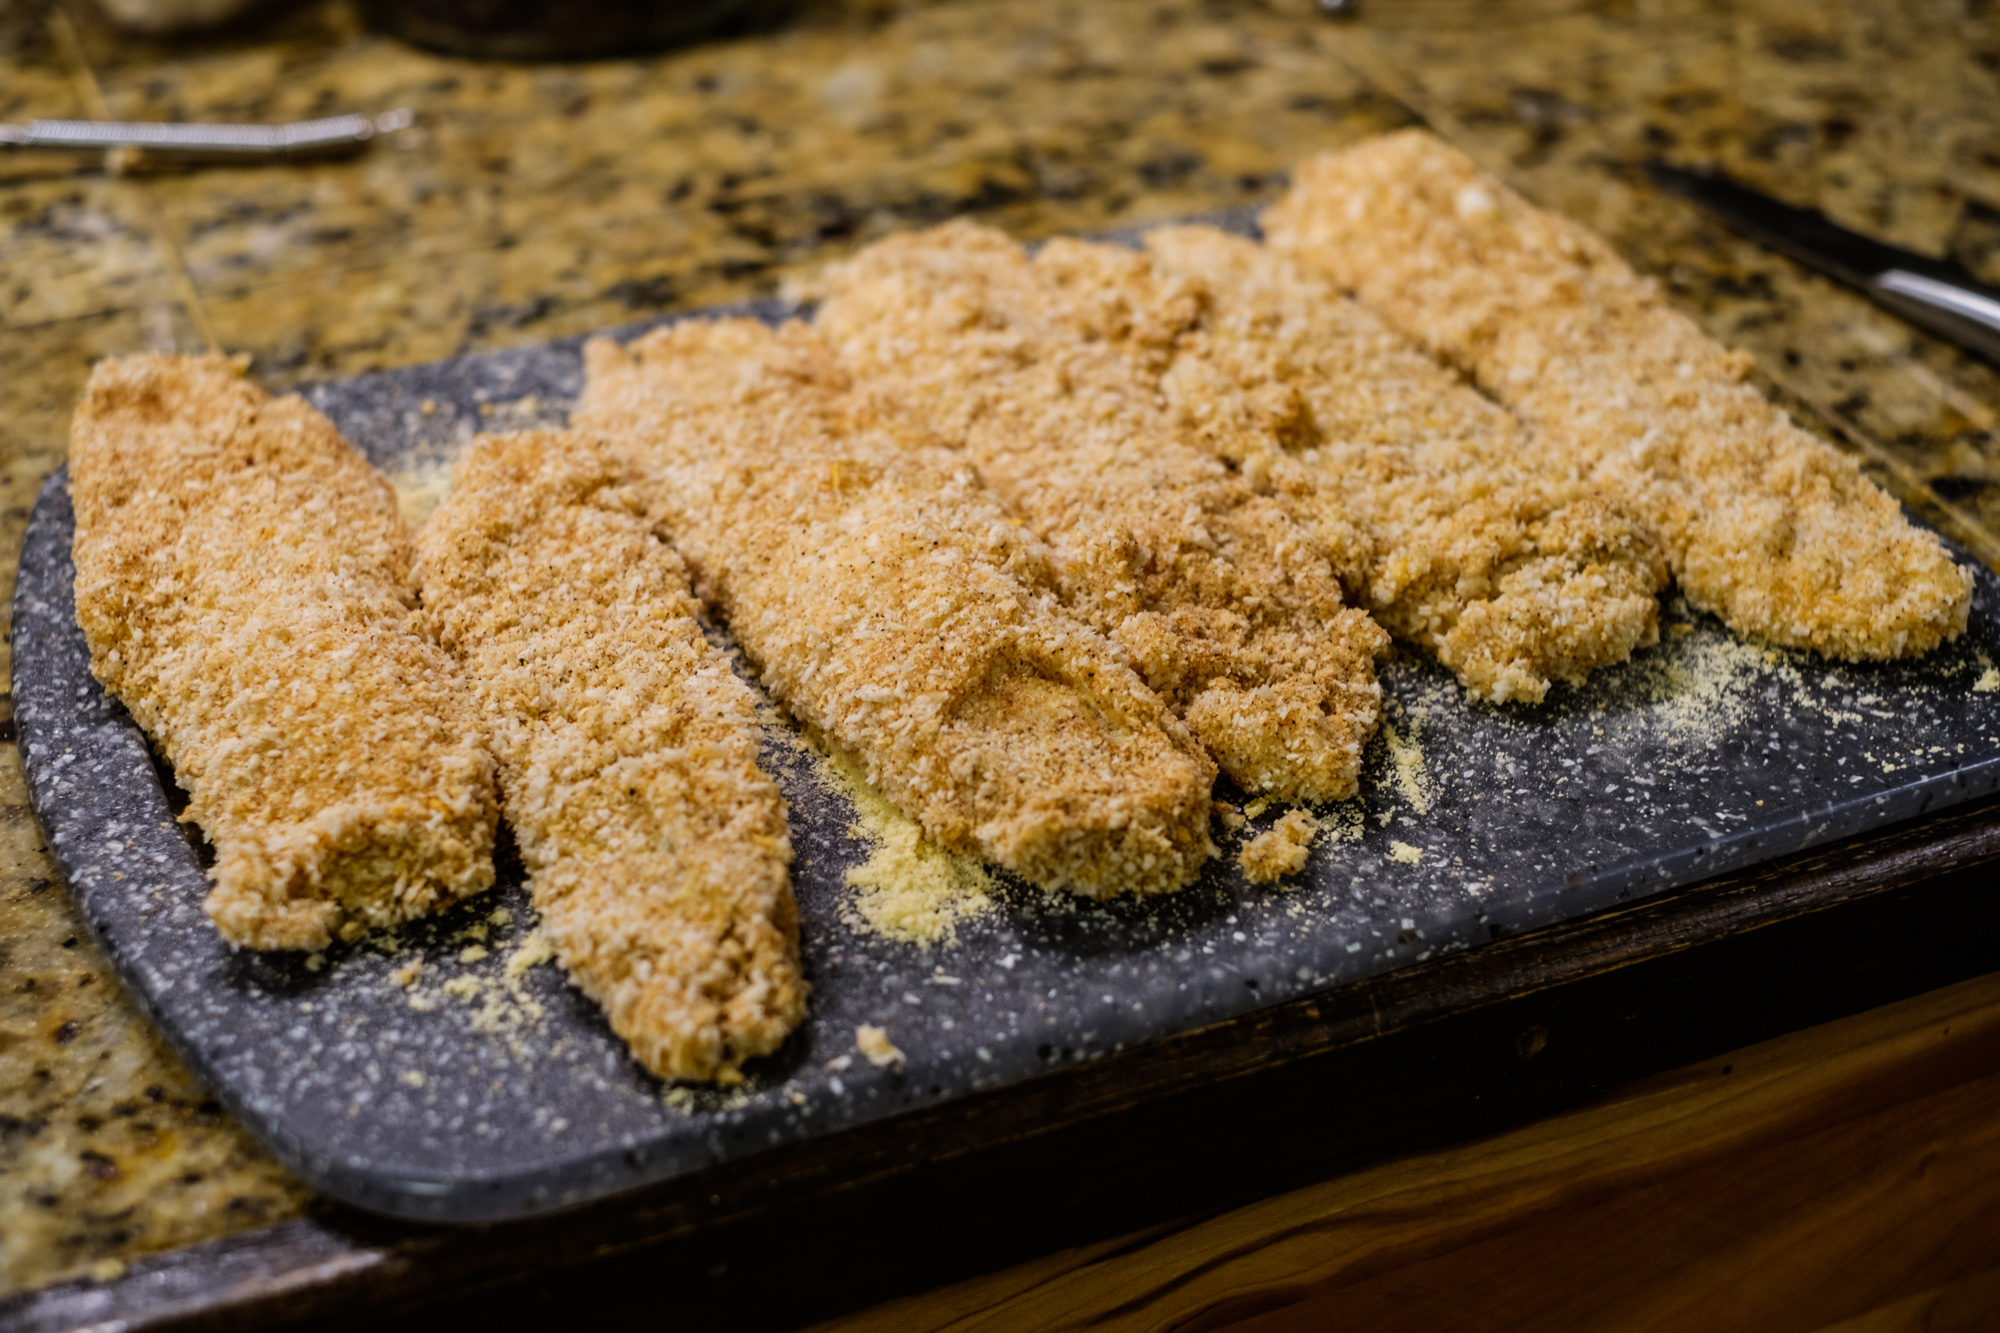 Breaded in panko and ready to fry